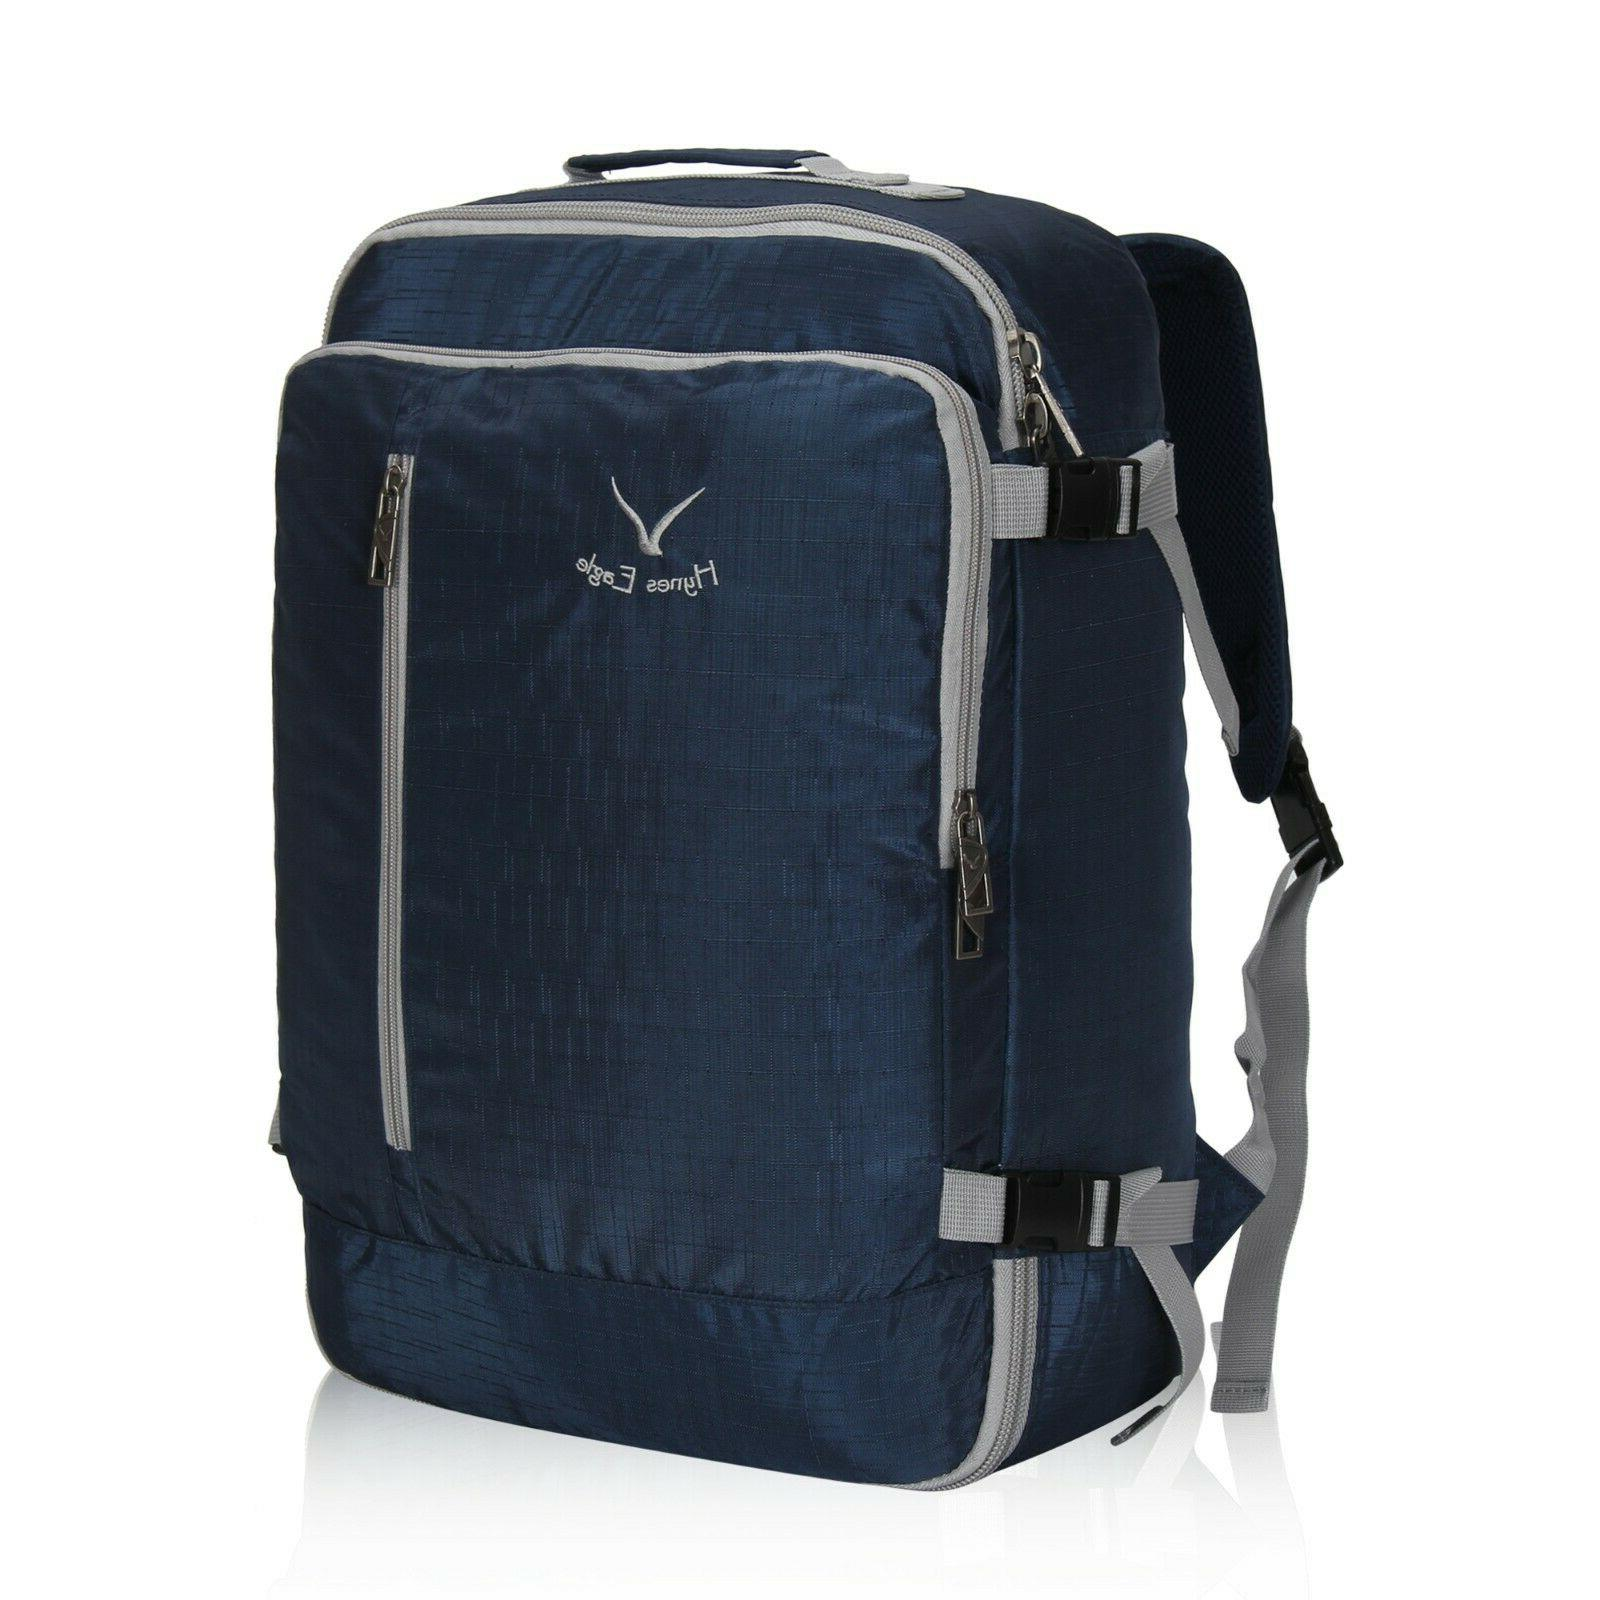 38l carry on backpack flight approved travel